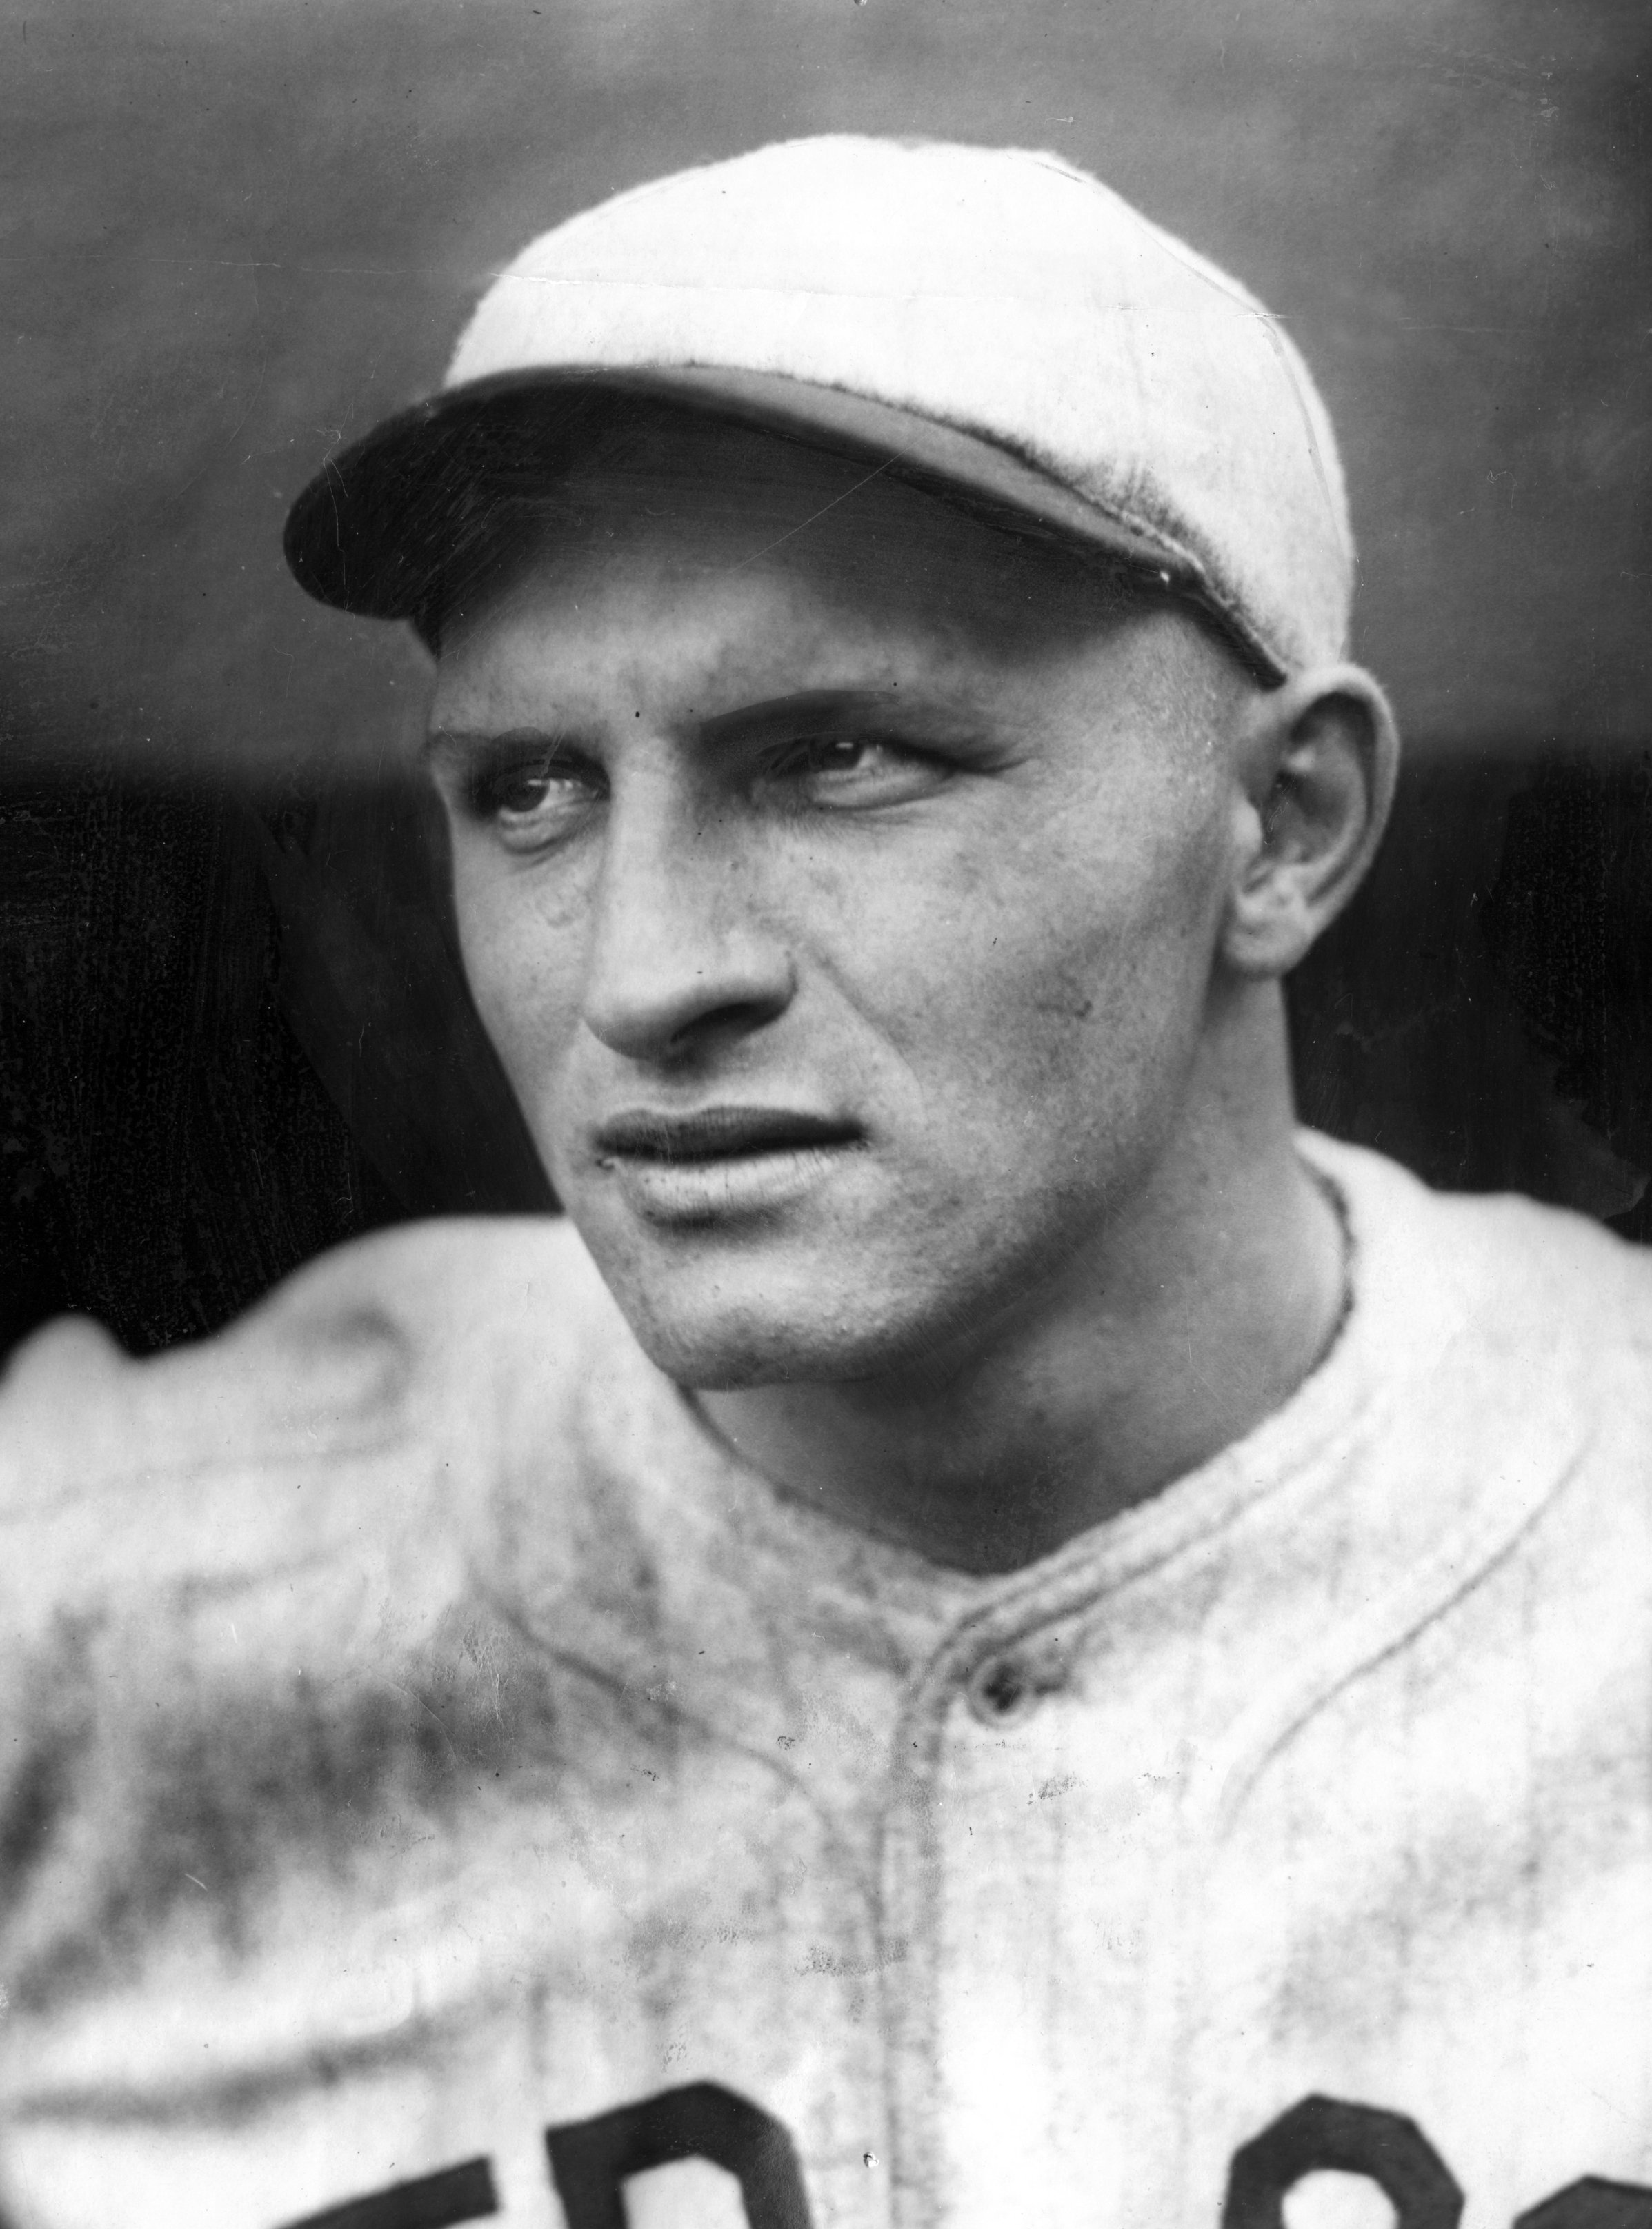 A fine defensive shortstop, helped the Tigers win the AL title in 1934 and the World Series in 1935.